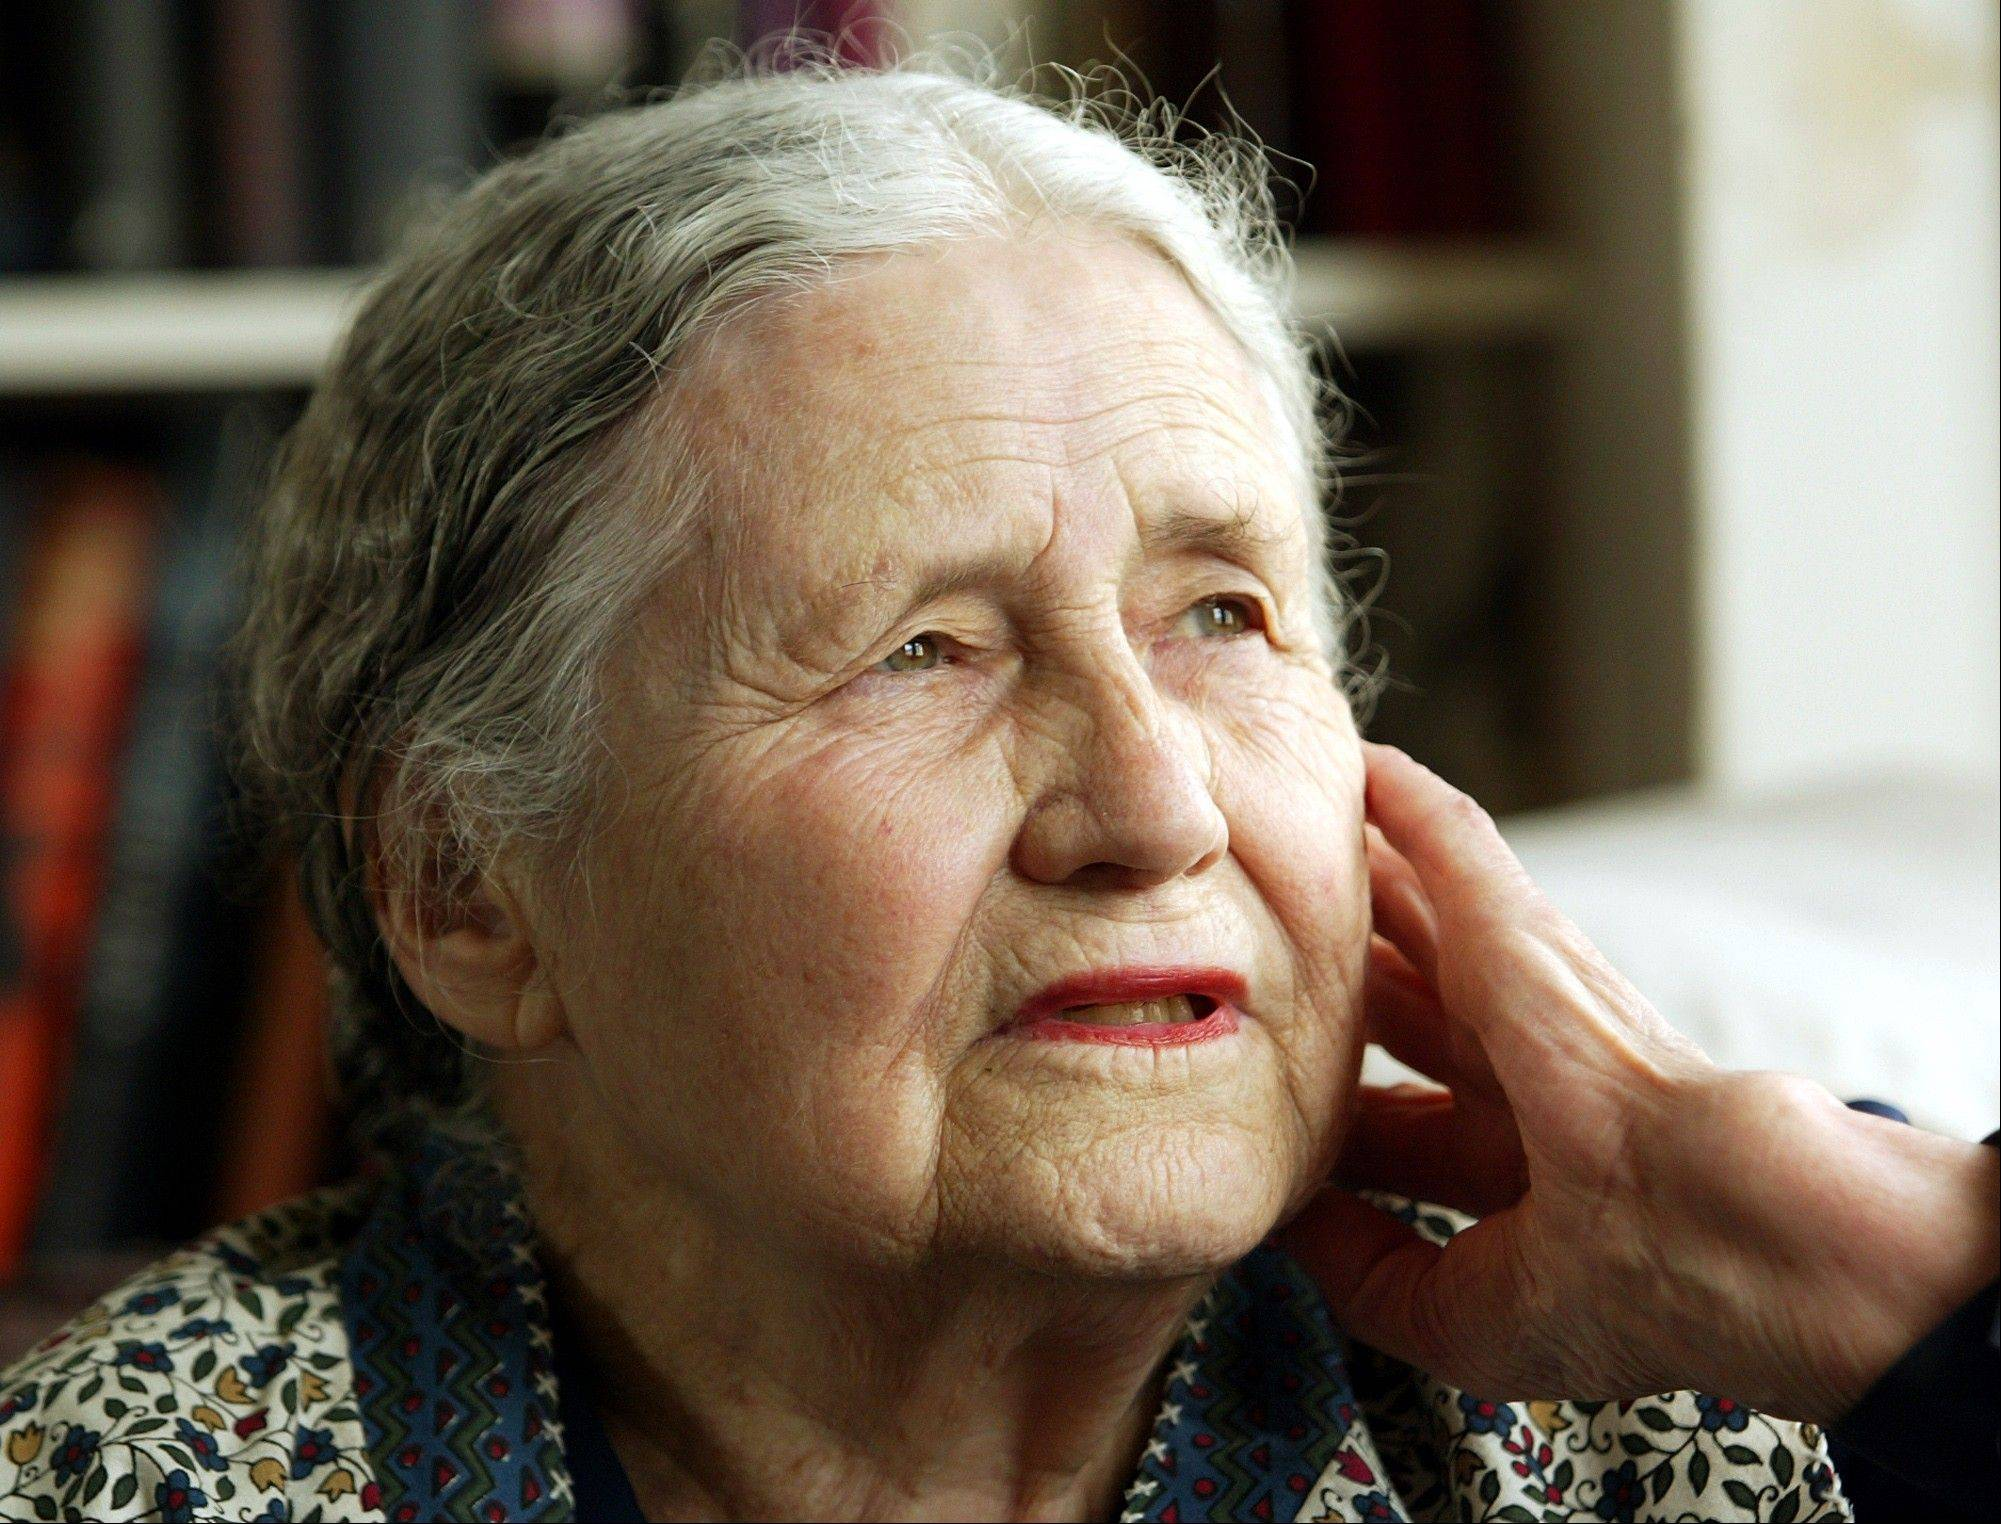 "In this April 17, 2006 file photo, Writer Doris Lessing, 86, sits in her home in north London. Doris Lessing, the free-thinking, world-traveling, often-polarizing writer of ""The Golden Notebook"" and dozens of other novels that reflected her own improbable journey across the former British empire, has died, early Sunday, Nov. 17, 2013. She was 94. The author of more than 50 works of fiction, nonfiction and poetry, Lessing explored topics ranging from colonial Africa to dystopian Britain, from the mystery of being female to the unknown worlds of science fiction."